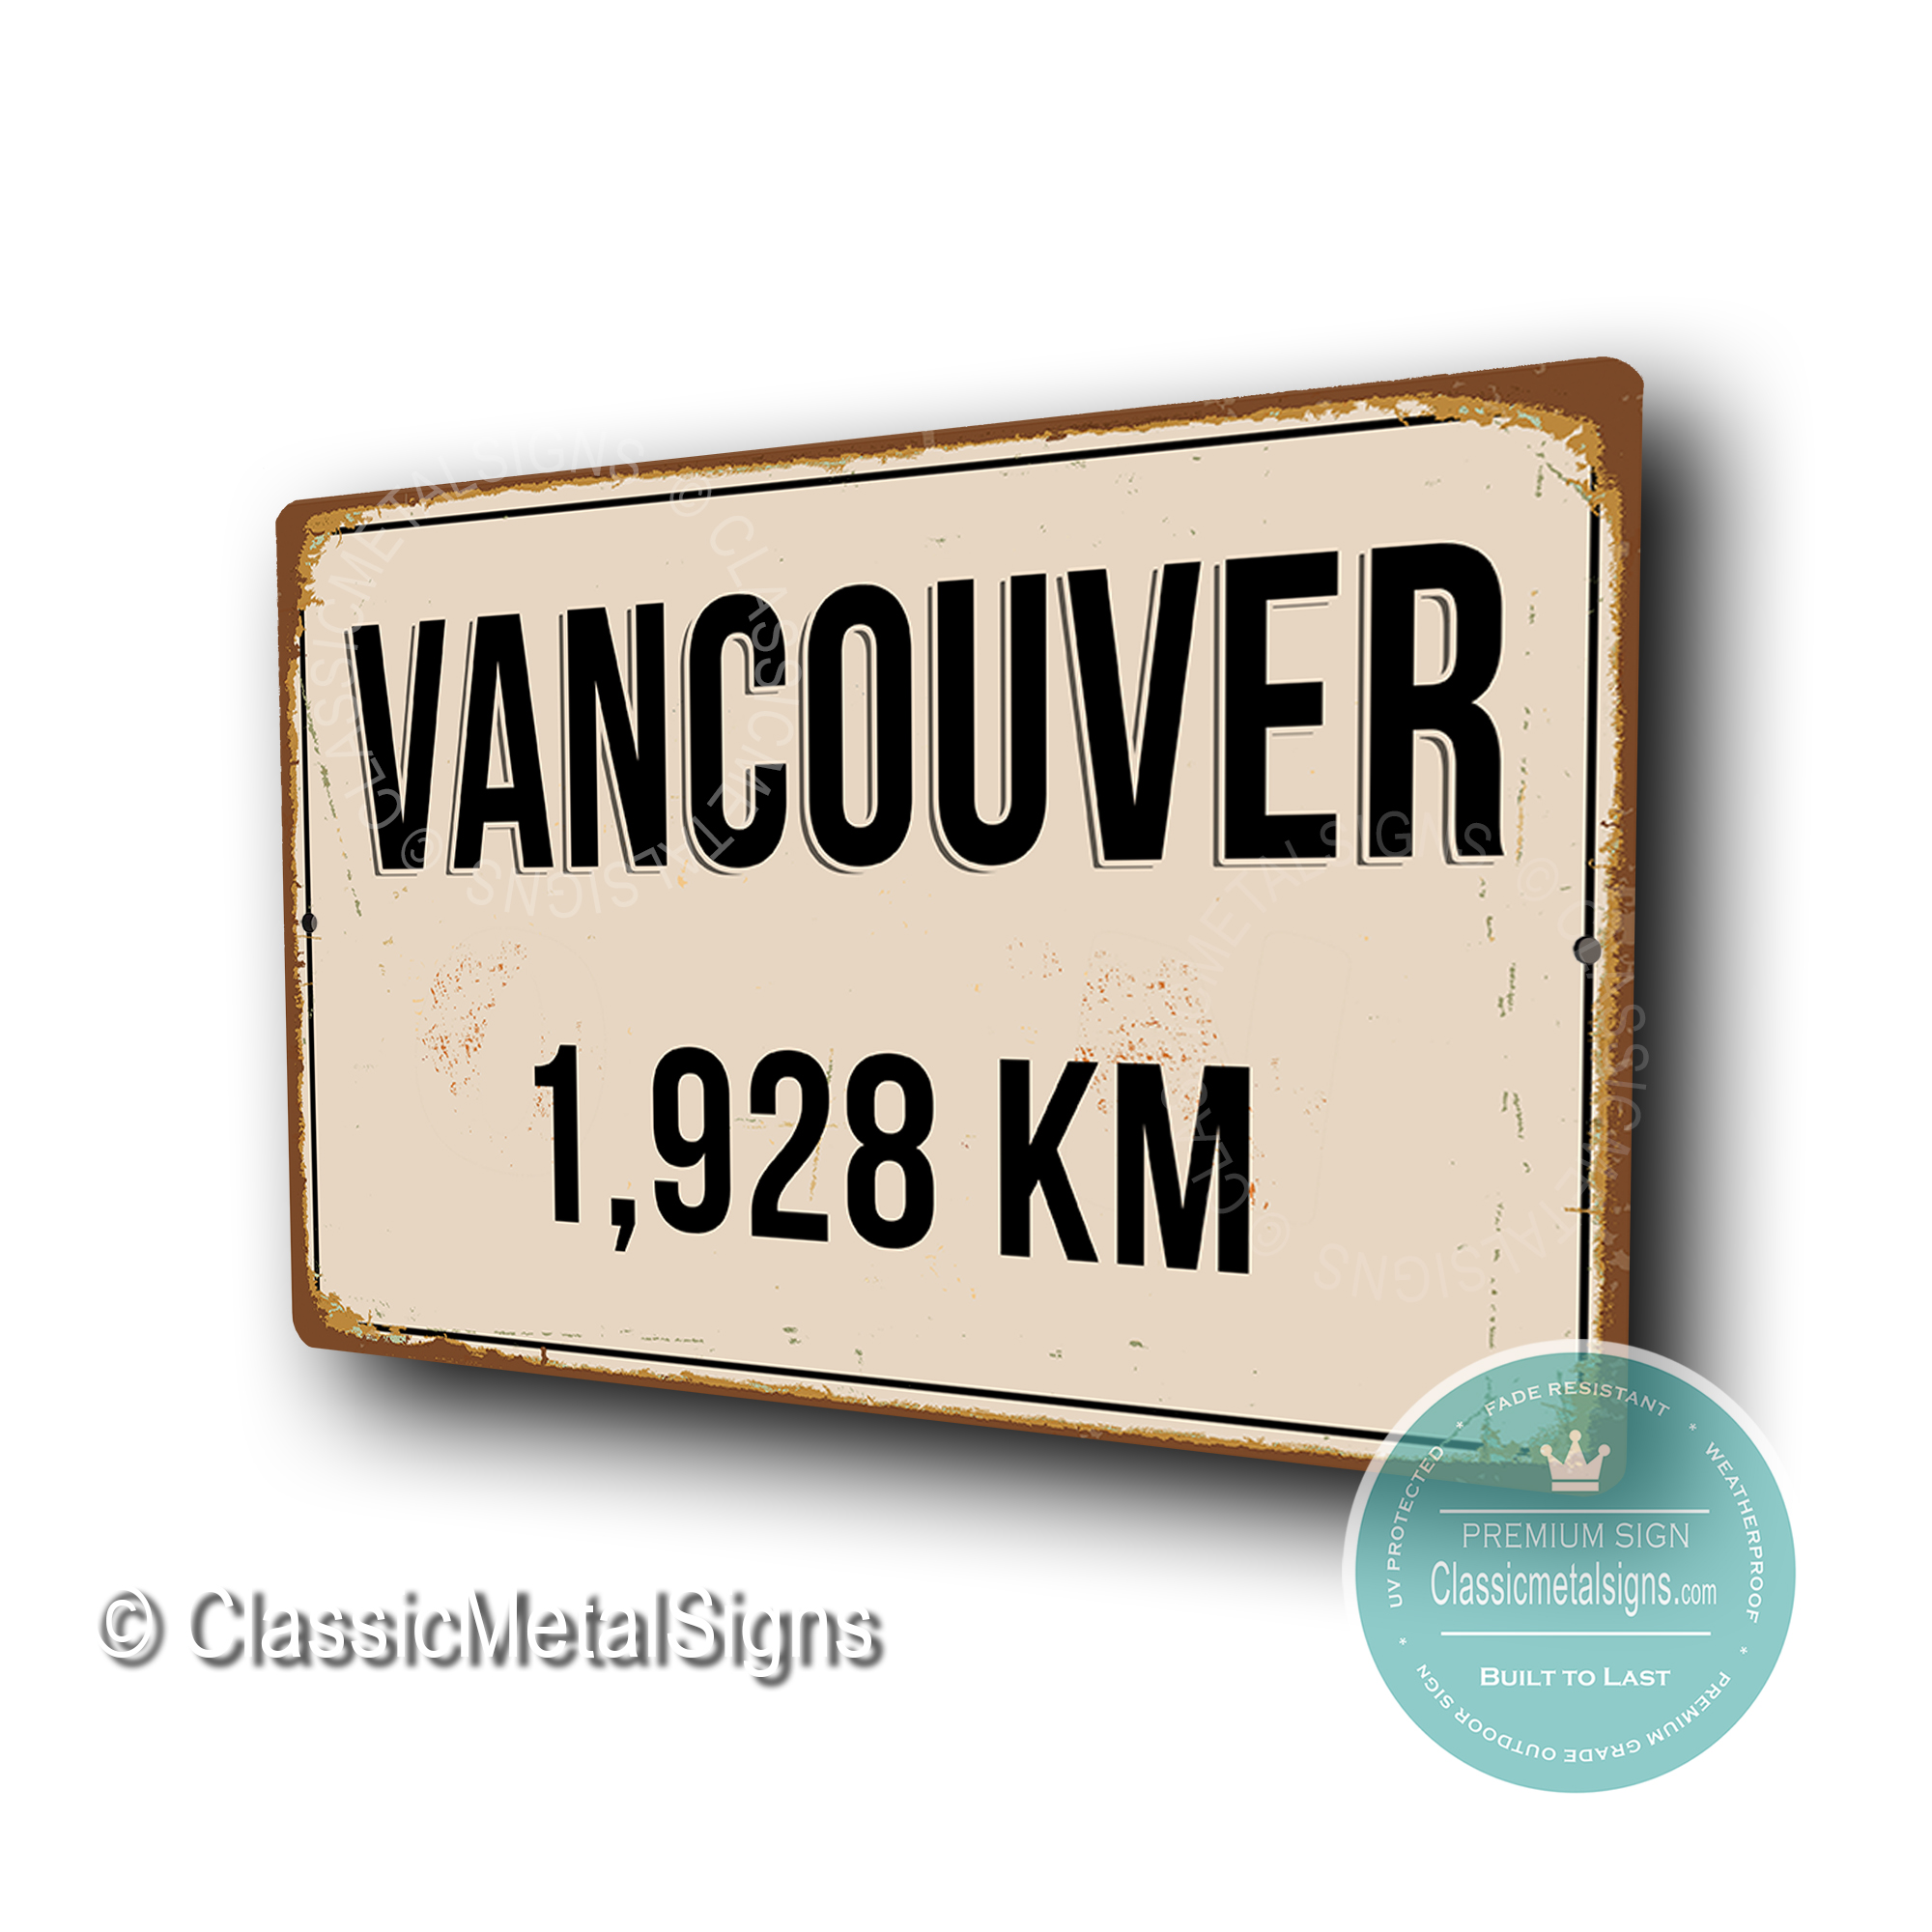 Vancouver Distance Sign